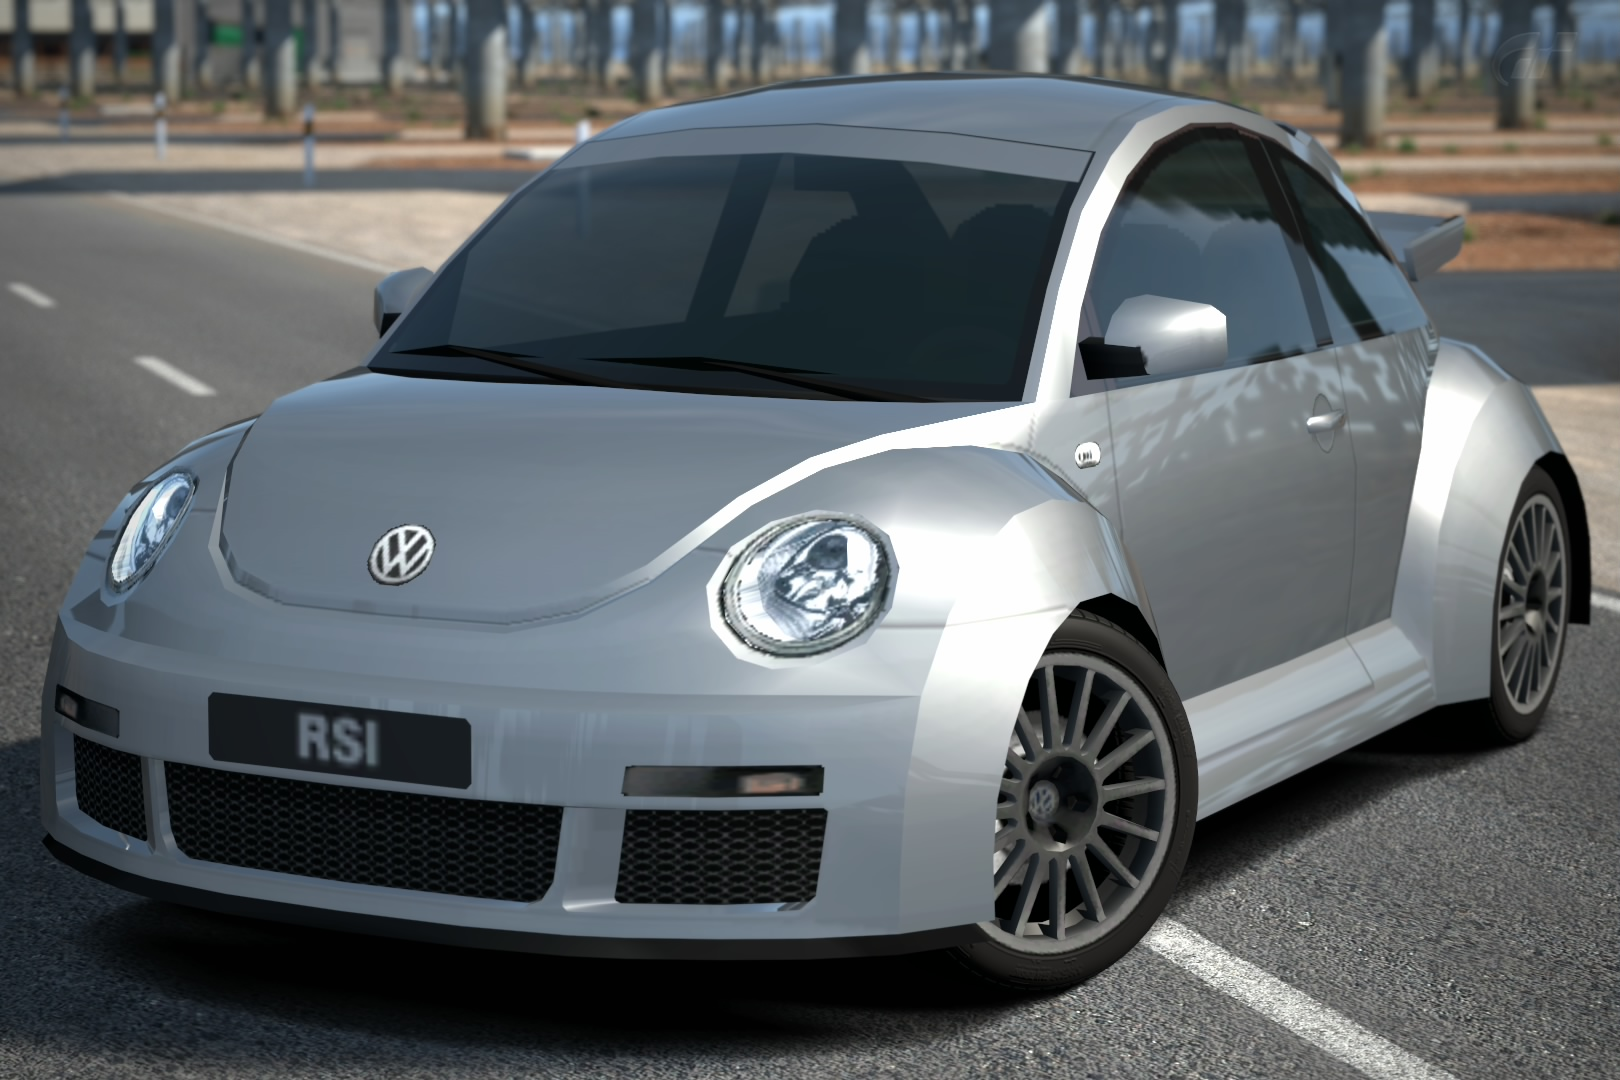 volkswagen new beetle rsi 39 00 gran turismo wiki fandom powered by wikia. Black Bedroom Furniture Sets. Home Design Ideas